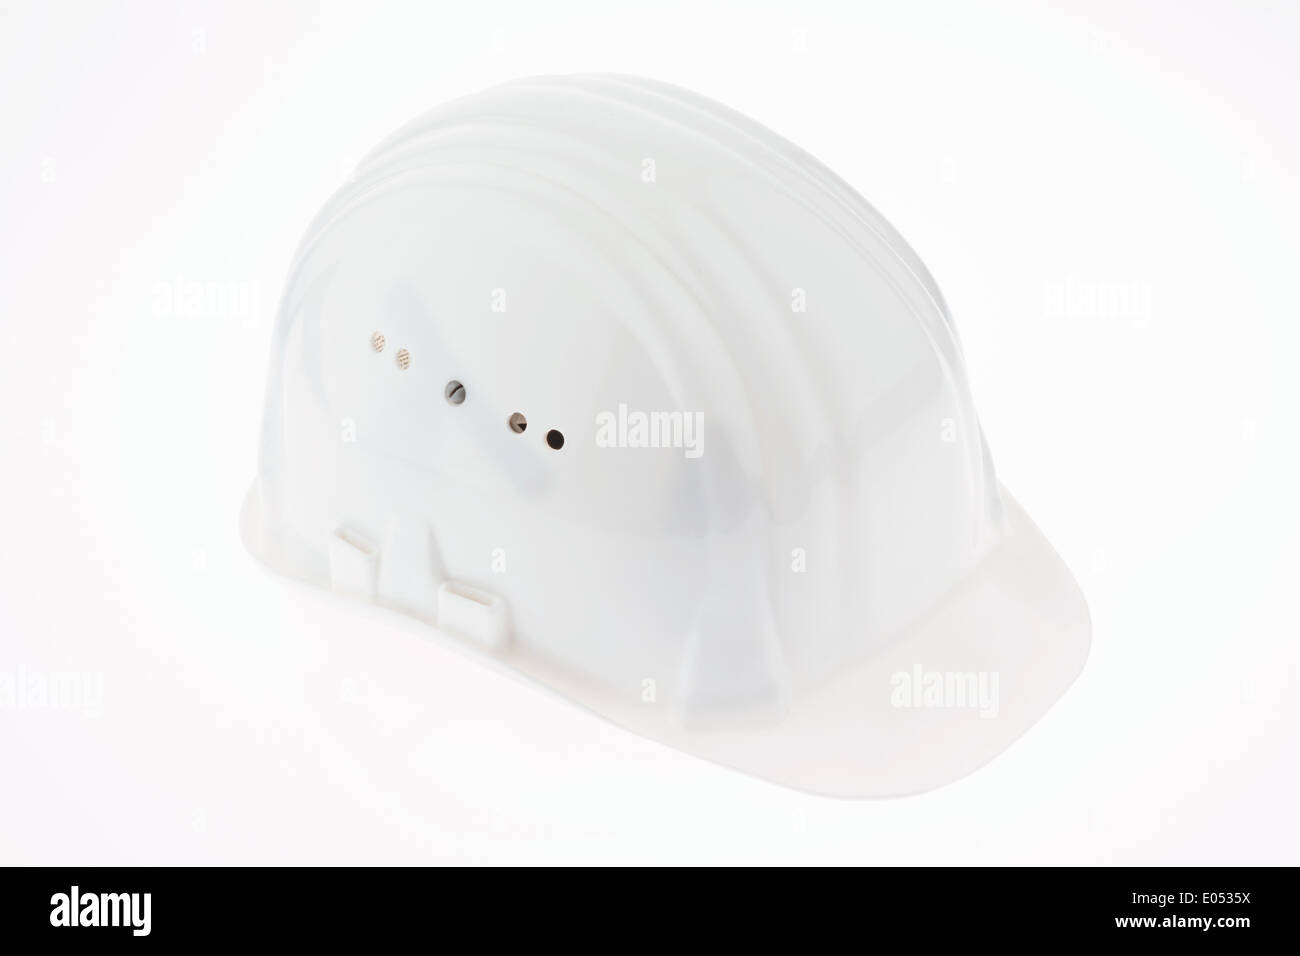 Construction helmet of a site foreman isolates on white background, Bauhelm eines Poliers isoliert auf weissem Hintergrund - Stock Image